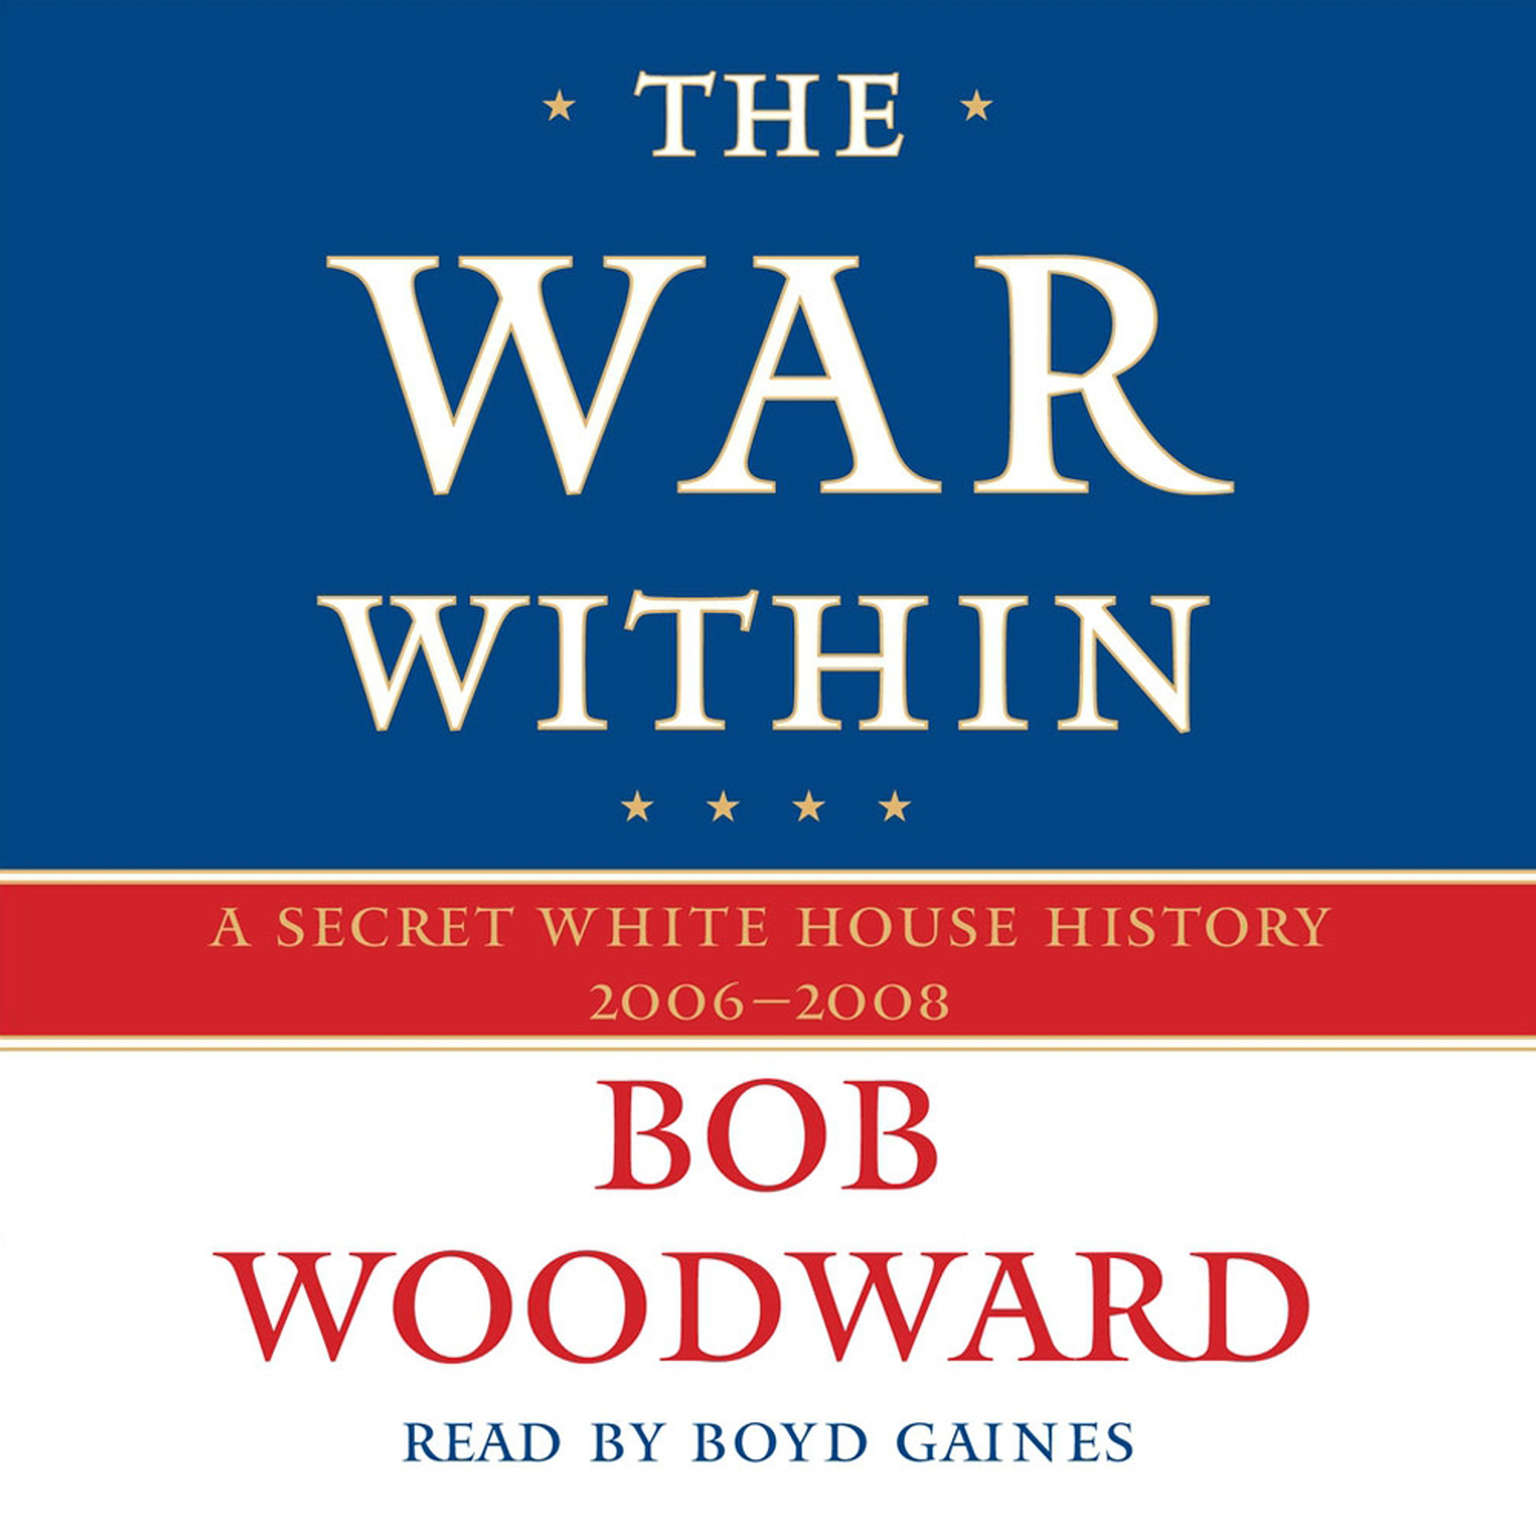 Printable The War Within: A Secret White House History 2006-2008 Audiobook Cover Art